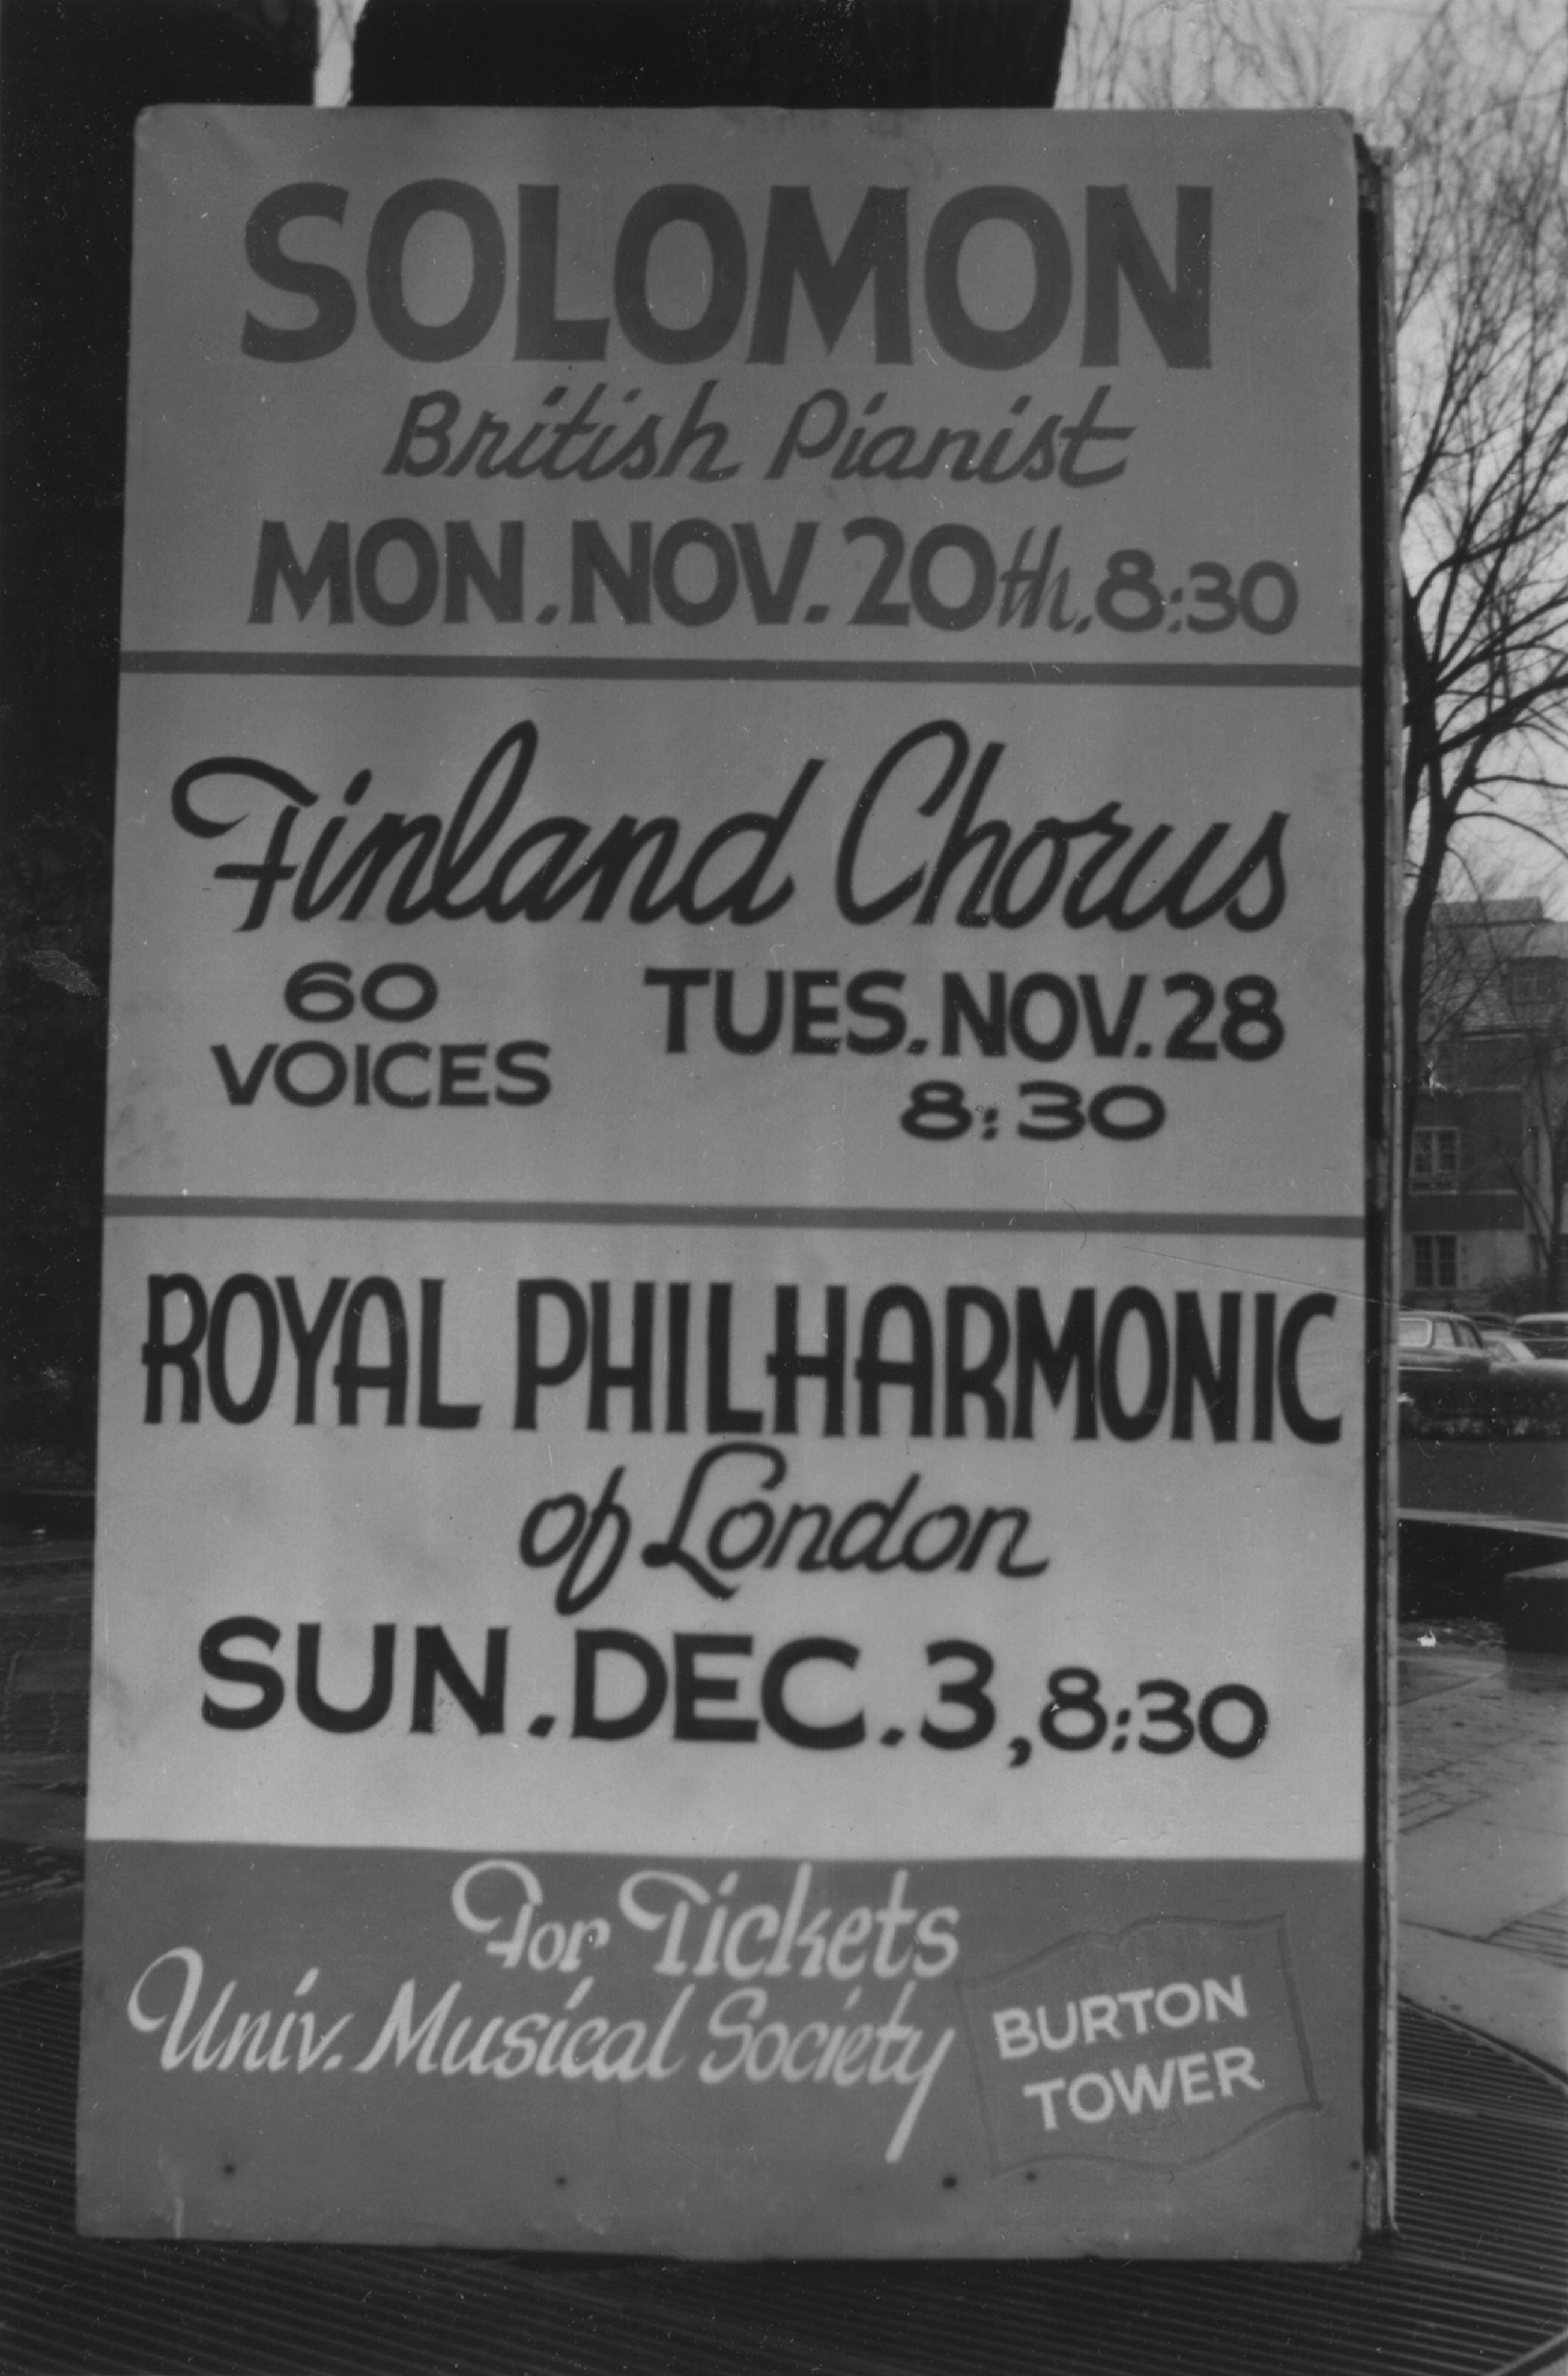 Soloman, Finland Chorus, and the Royal Philharmonic of London